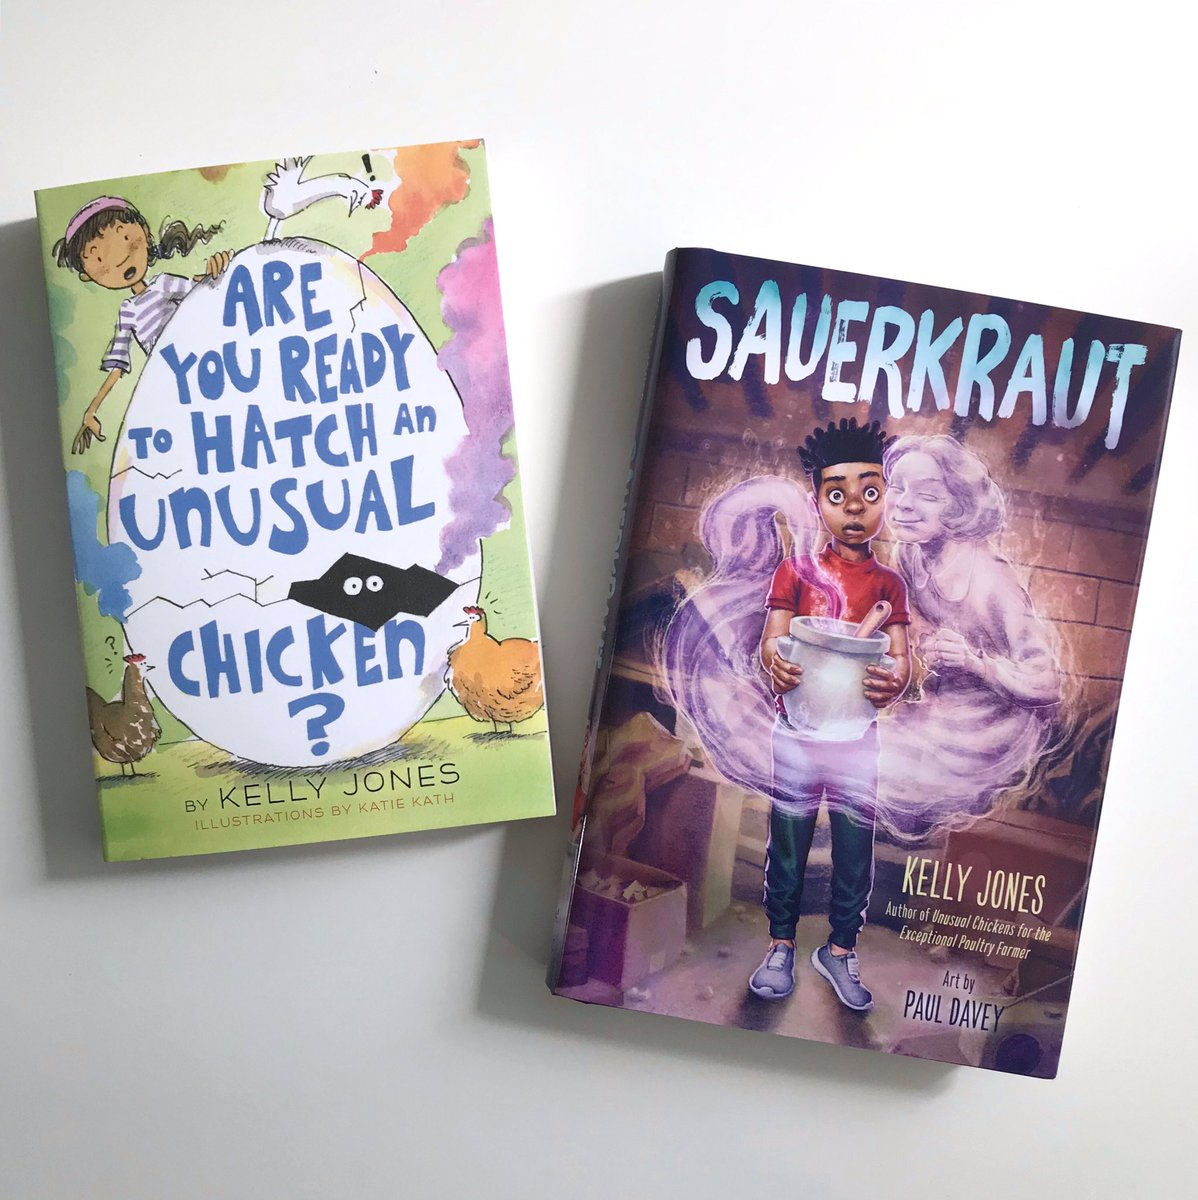 My new #mglit novel Sauerkraut & the paperback of Are You Ready to Hatch an Unusual Chicken? are in bookstores today! Thank you to amazing illustrators @mattahan & @kathk_me, & to @KnopfBFYR! #ghostlysauerkraut #unusualchickens @randomhousekids @RHCBEducators